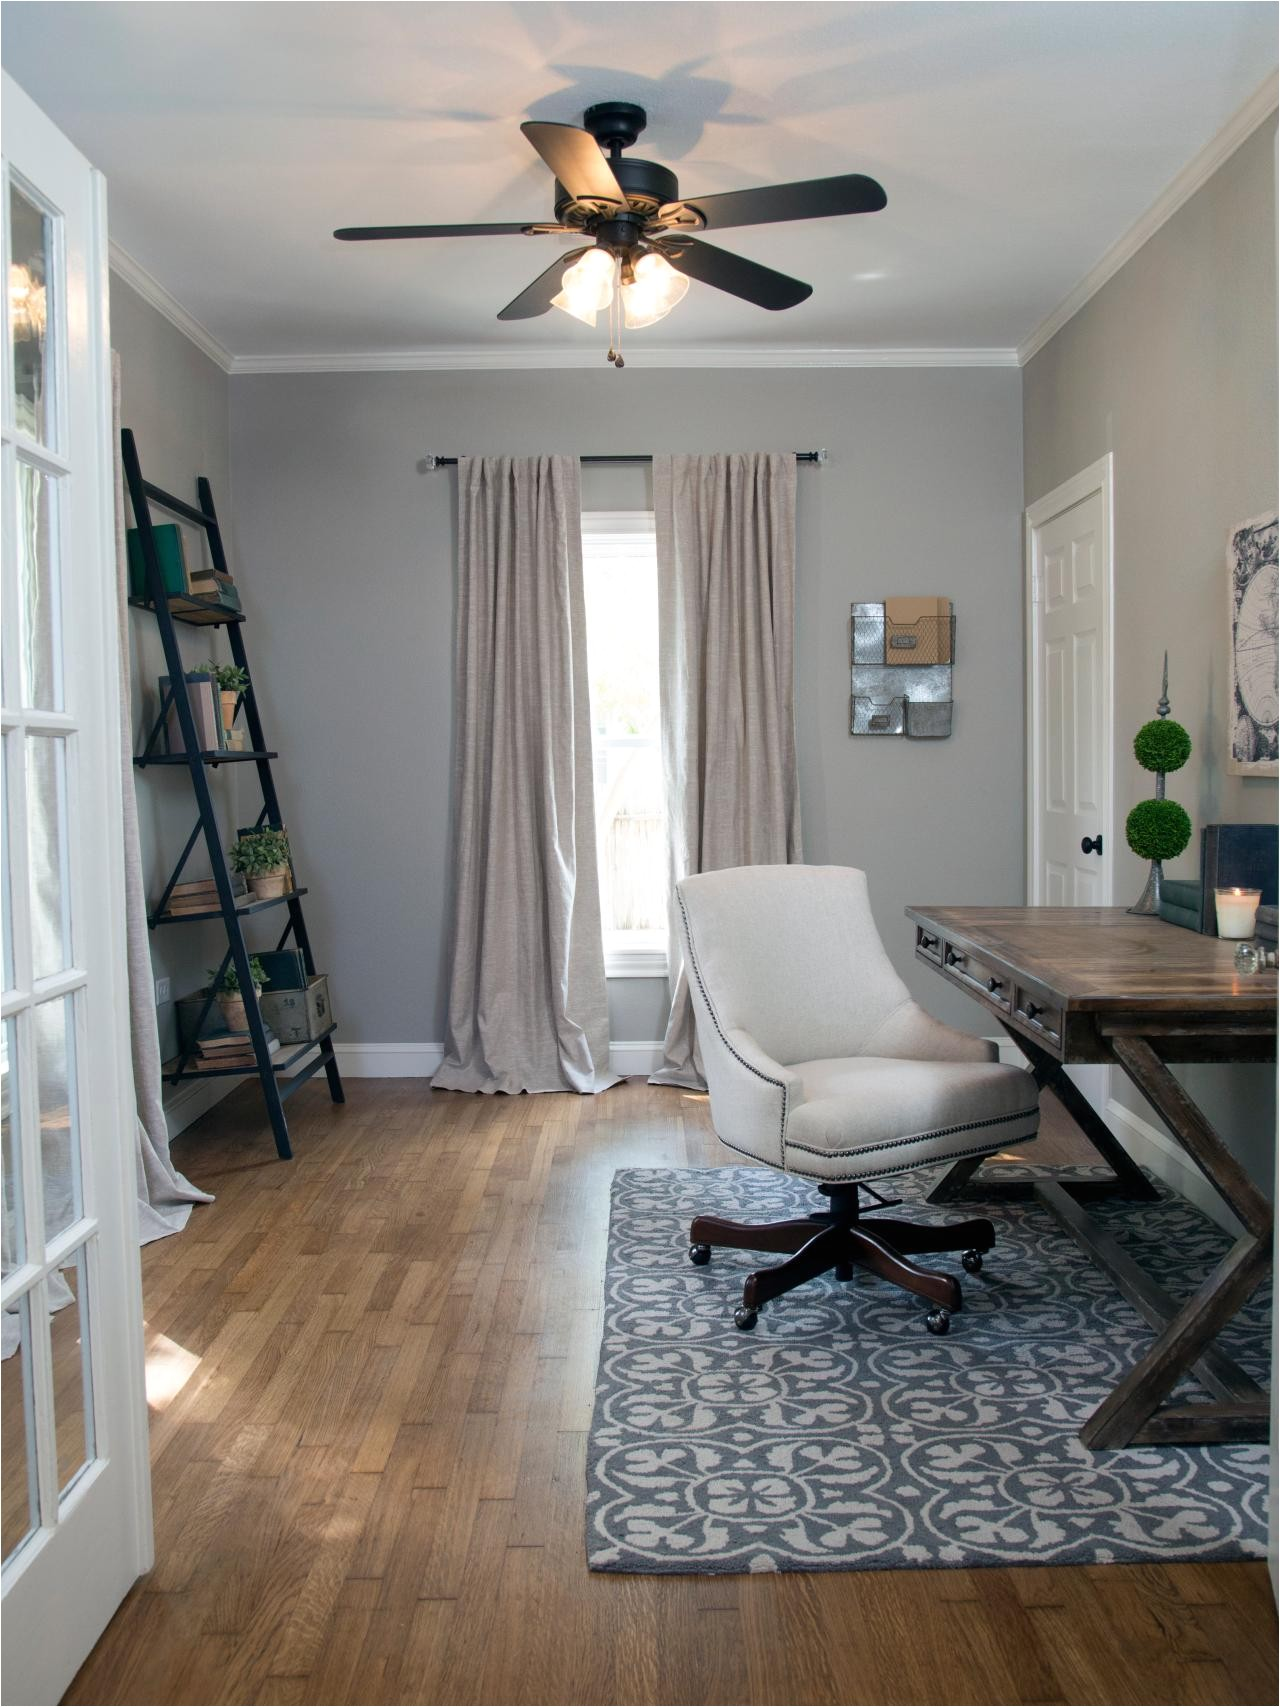 Fixer Upper Ceiling Fan Ideas Photos Hgtv 39 S Fixer Upper with Chip and Joanna Gaines Hgtv